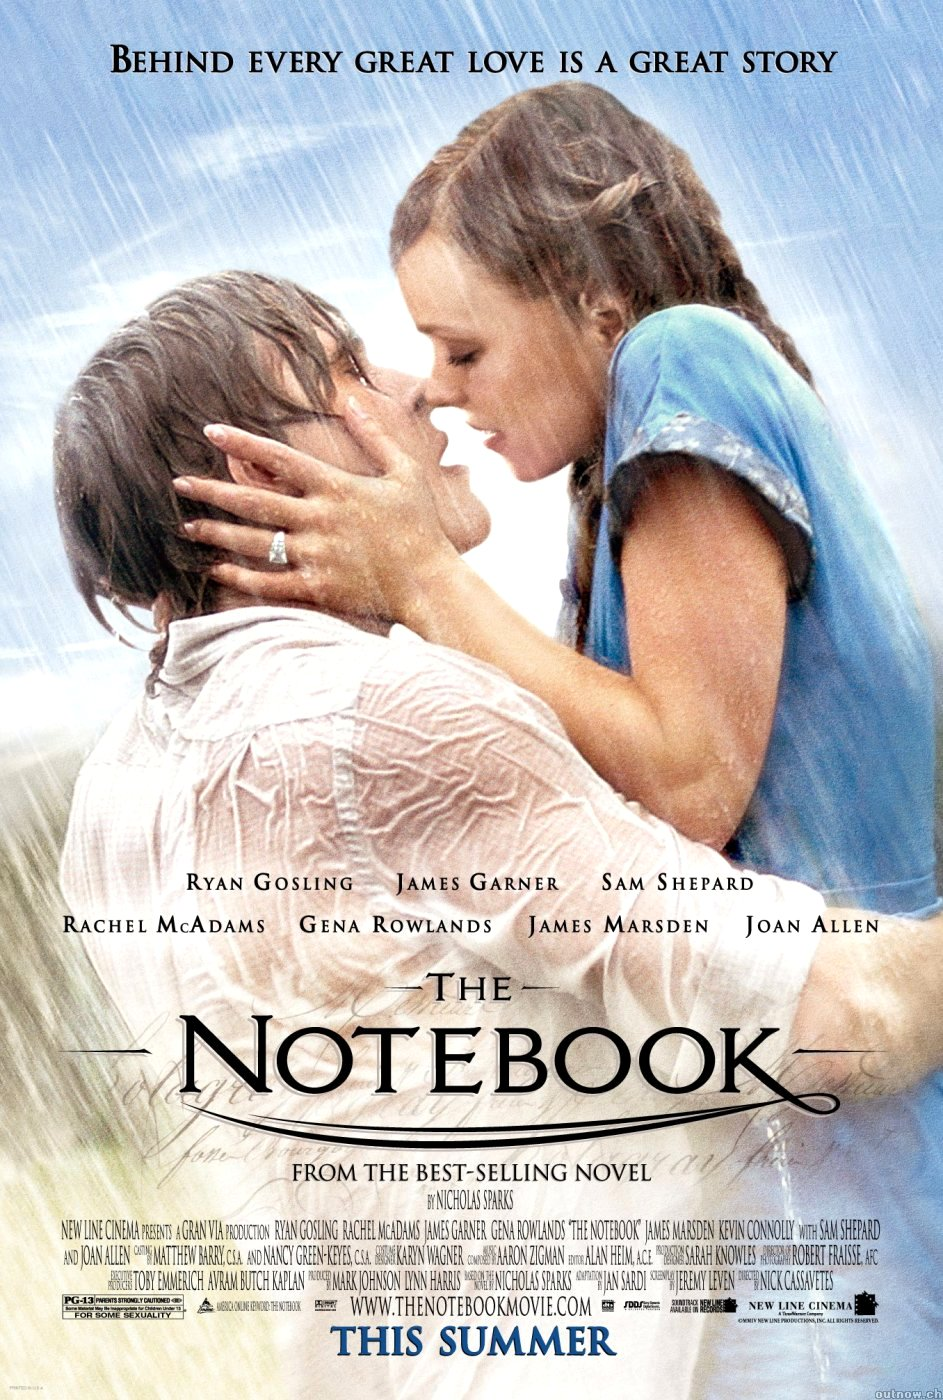 The Notebook Movie Poster Google image from http://economydecoded.com/wp-content/uploads/2014/01/The-notebook.jpg